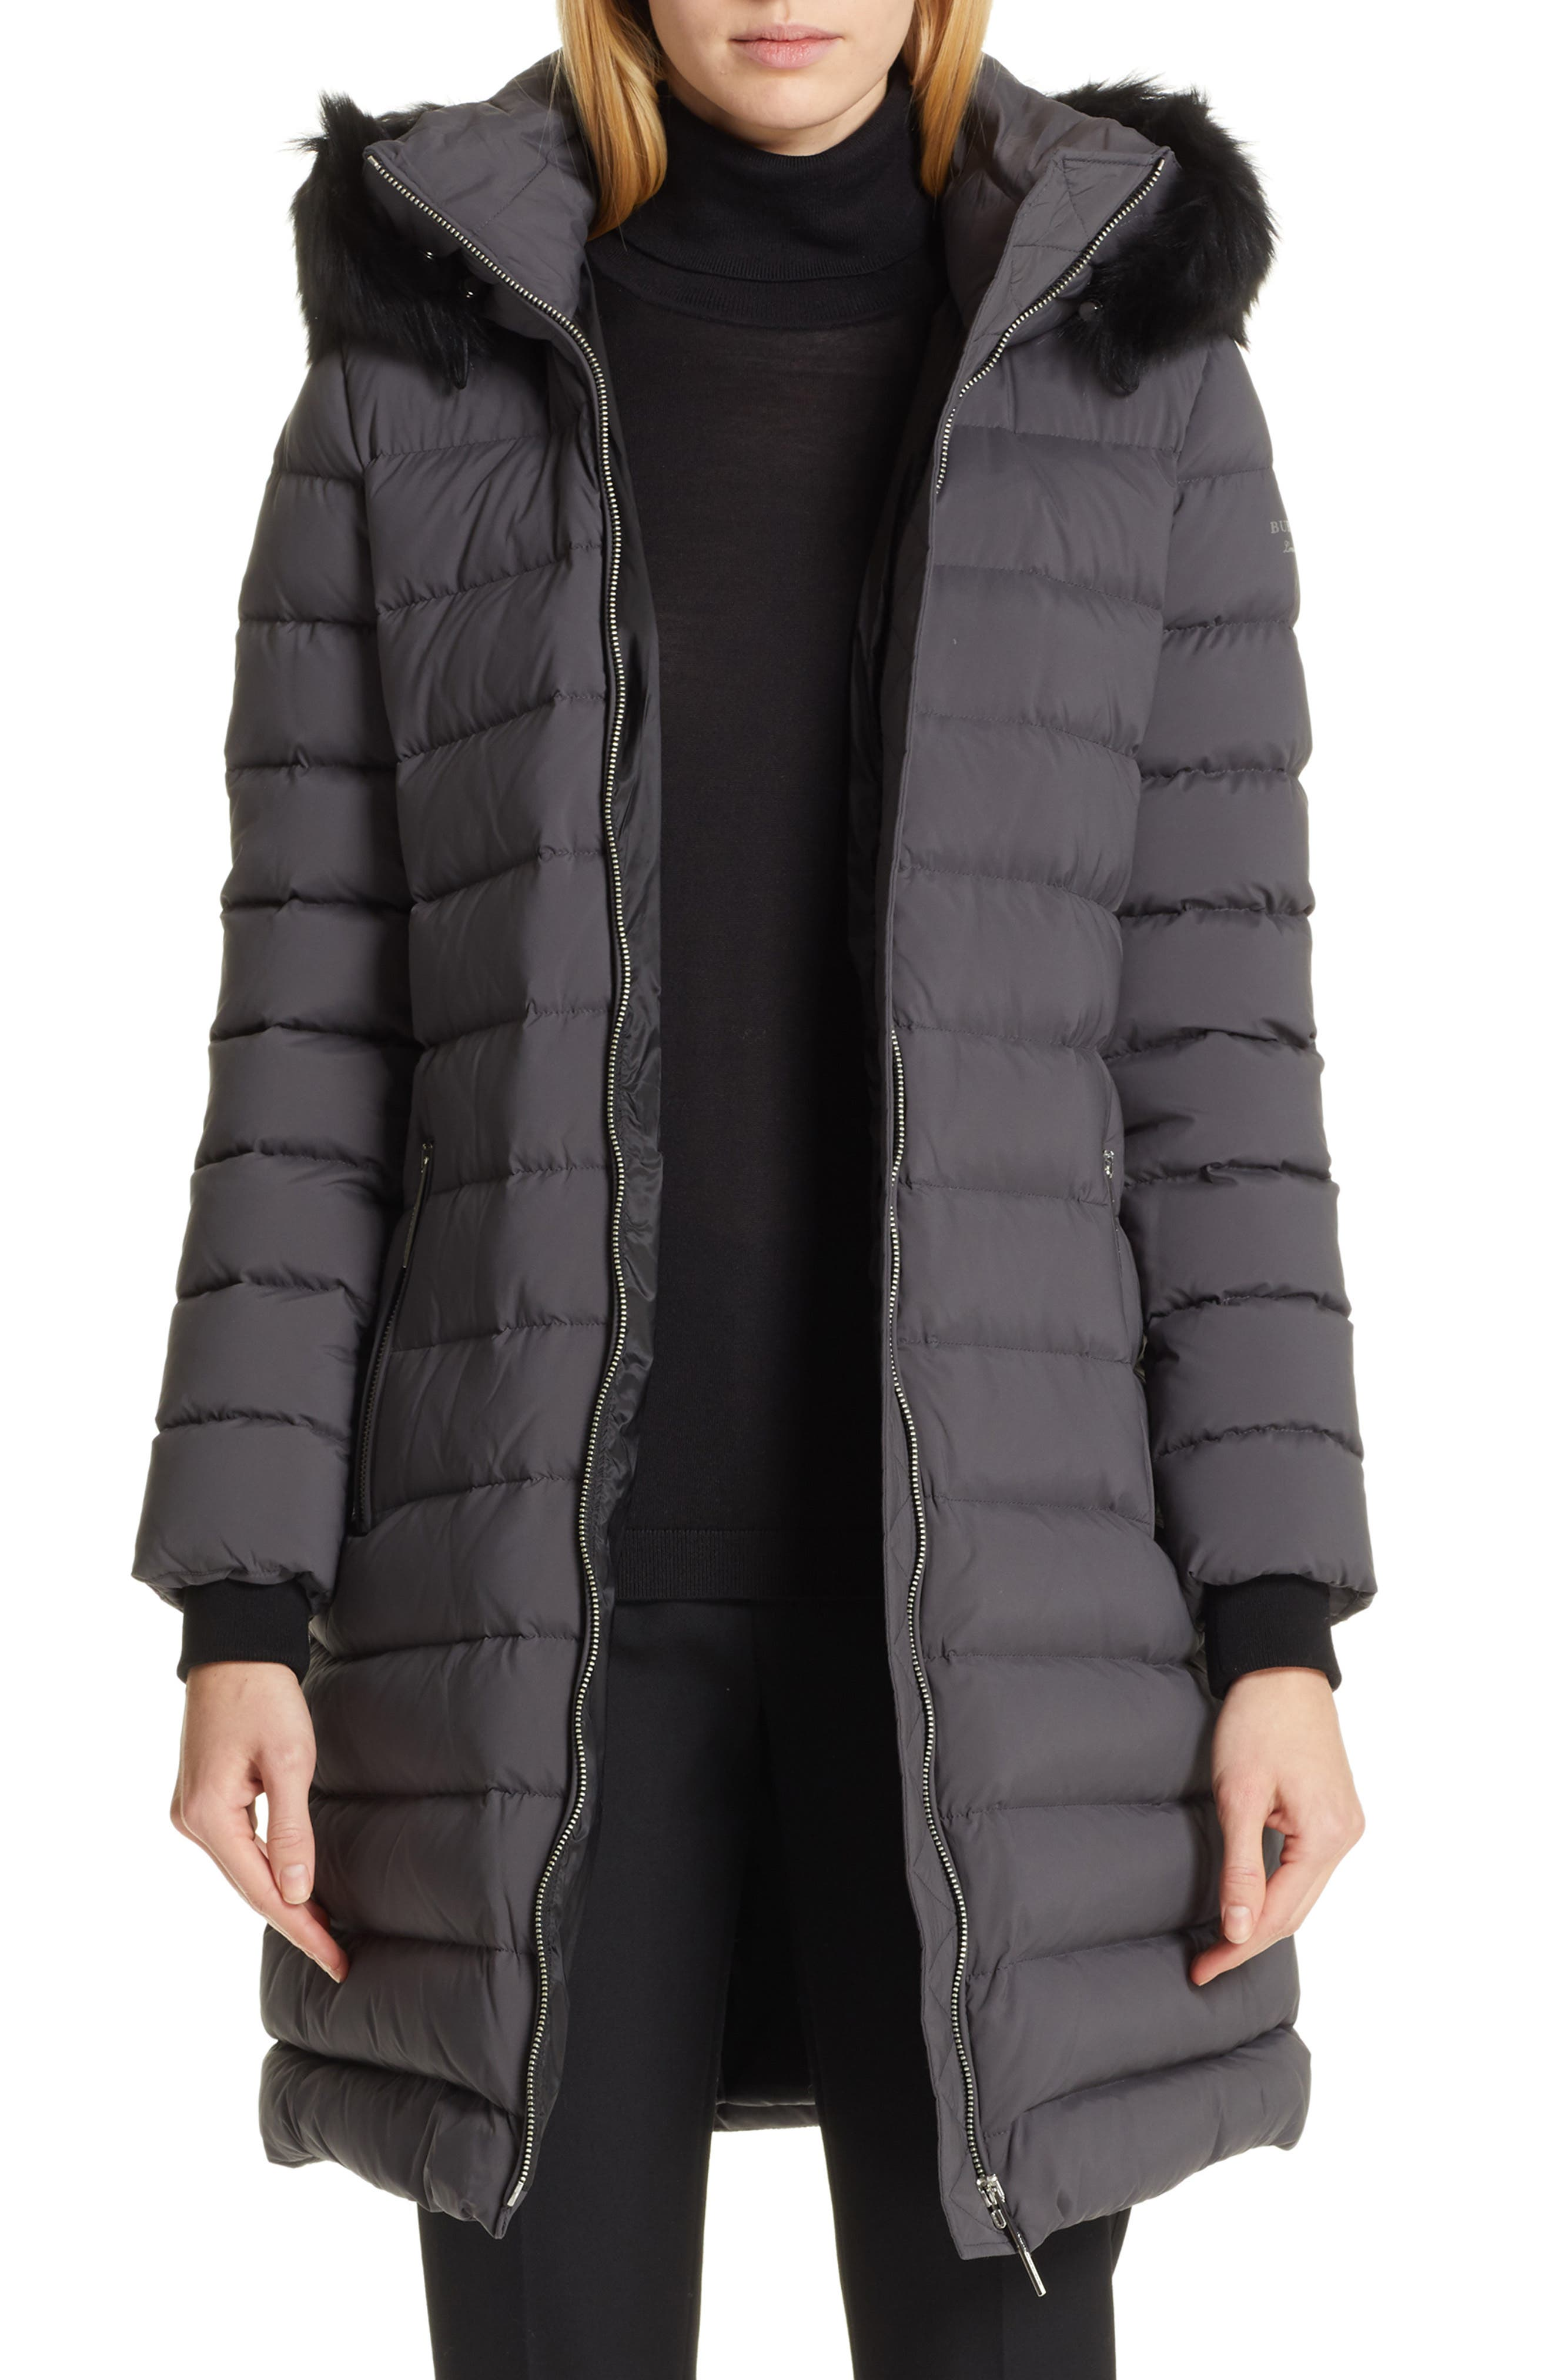 BURBERRY, Limehouse Quilted Down Puffer Coat with Removable Genuine Shearling Trim, Main thumbnail 1, color, MID GREY